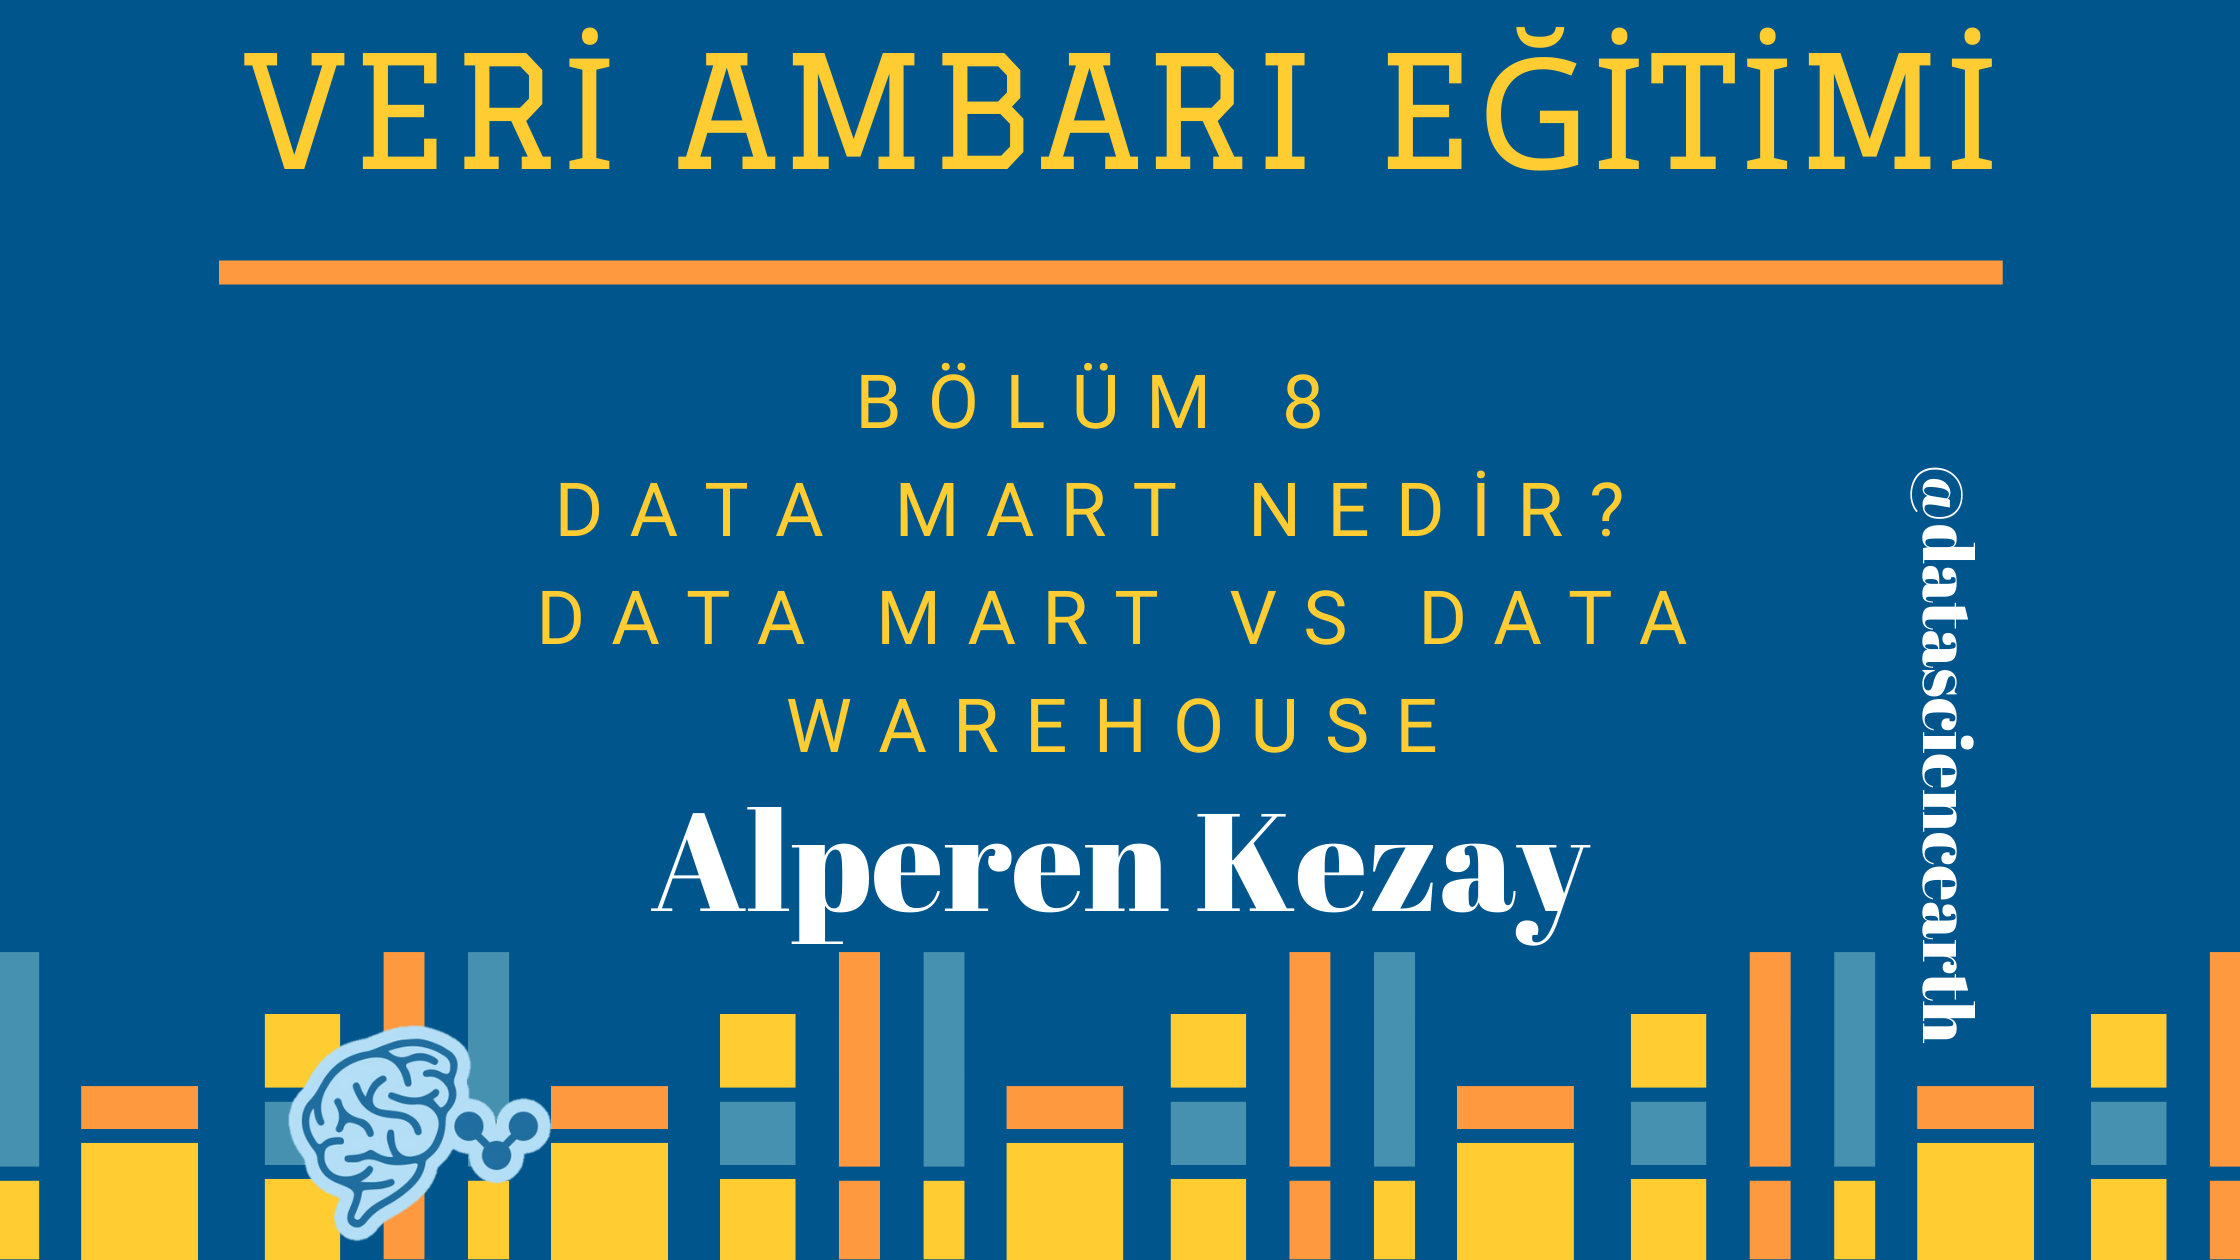 Data Mart Nedir? Data Mart VS Data Warehouse